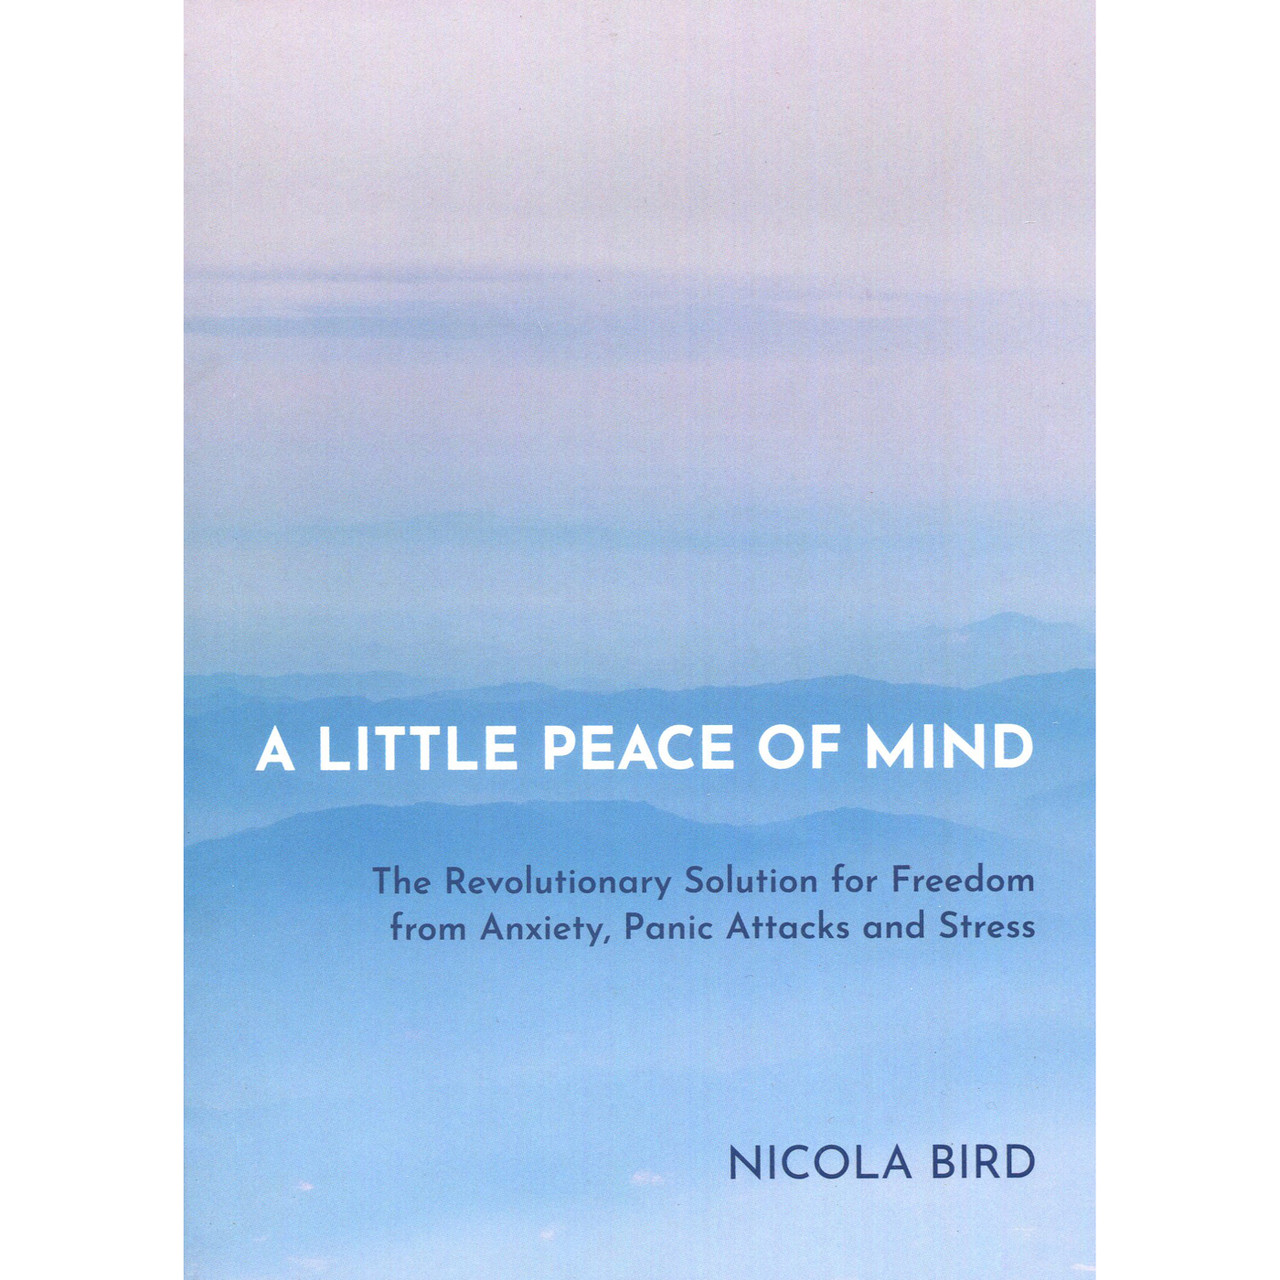 A Little Peace of Mind by Nicola Bird